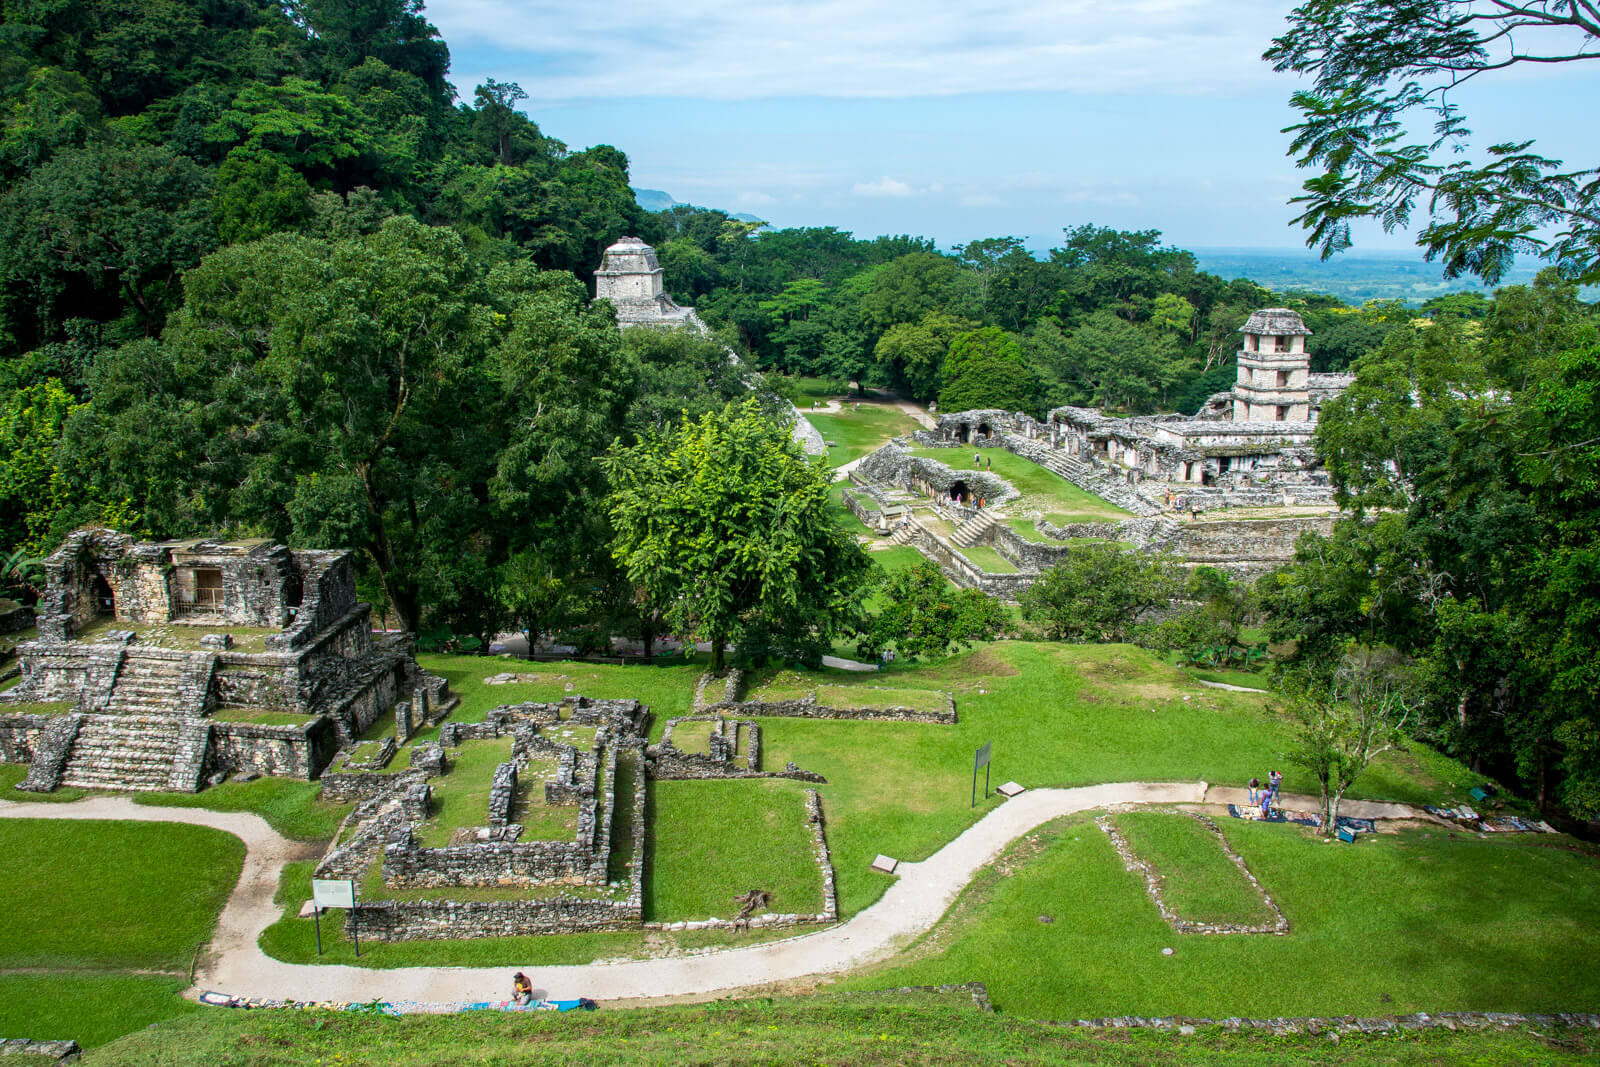 Panoramic view of Palenque's Pyramids